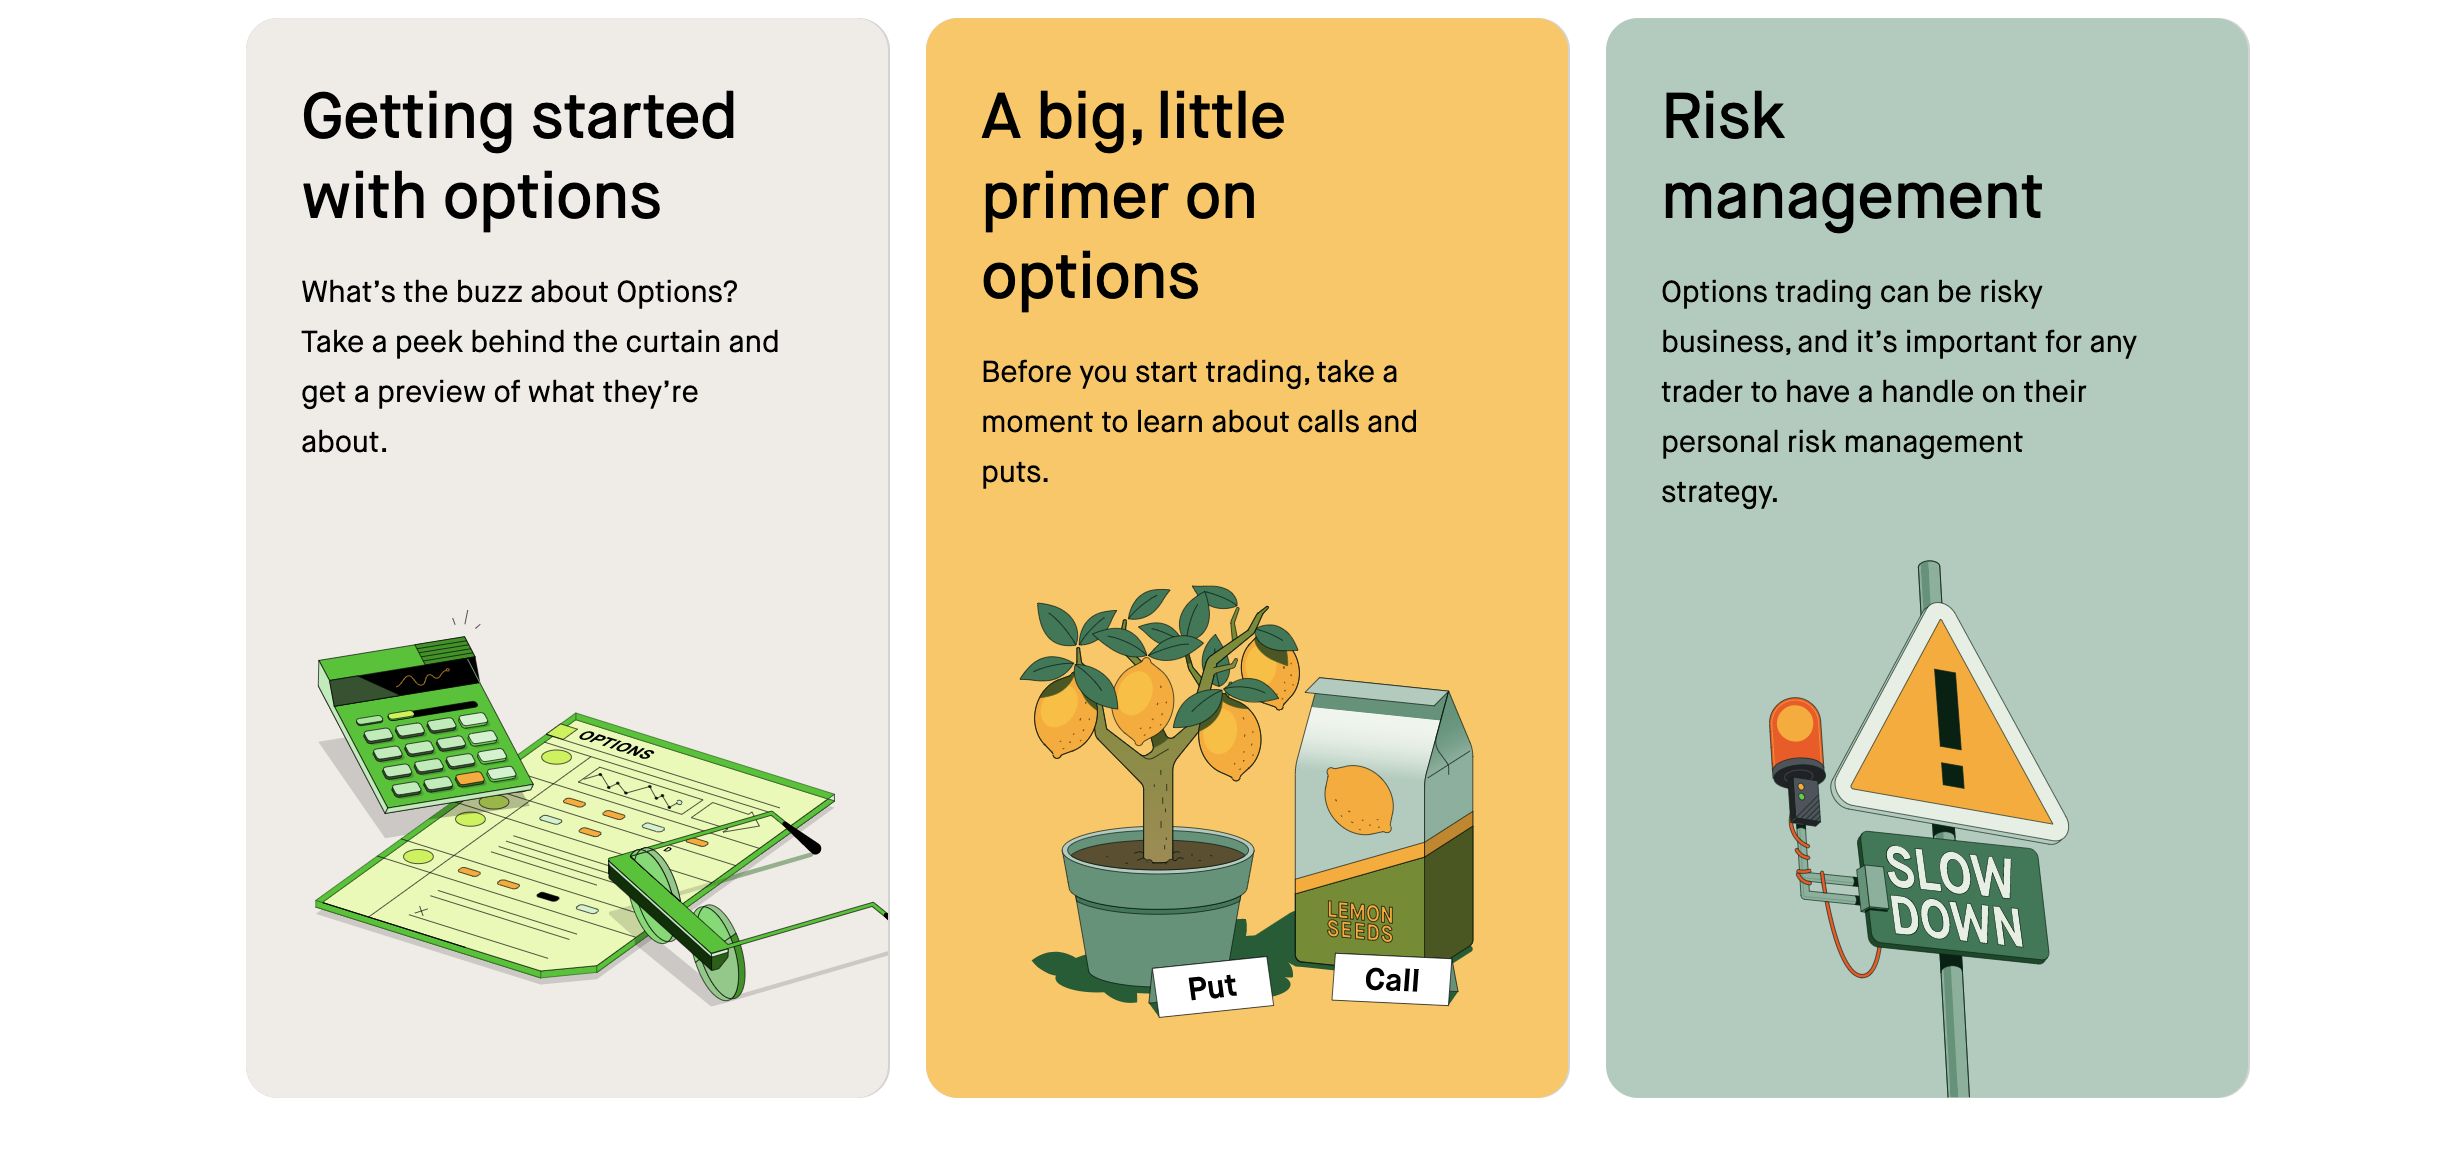 Robinhood offers educational tools for investors just learning about the markets. This image shows information on options. Image from robinhood.com